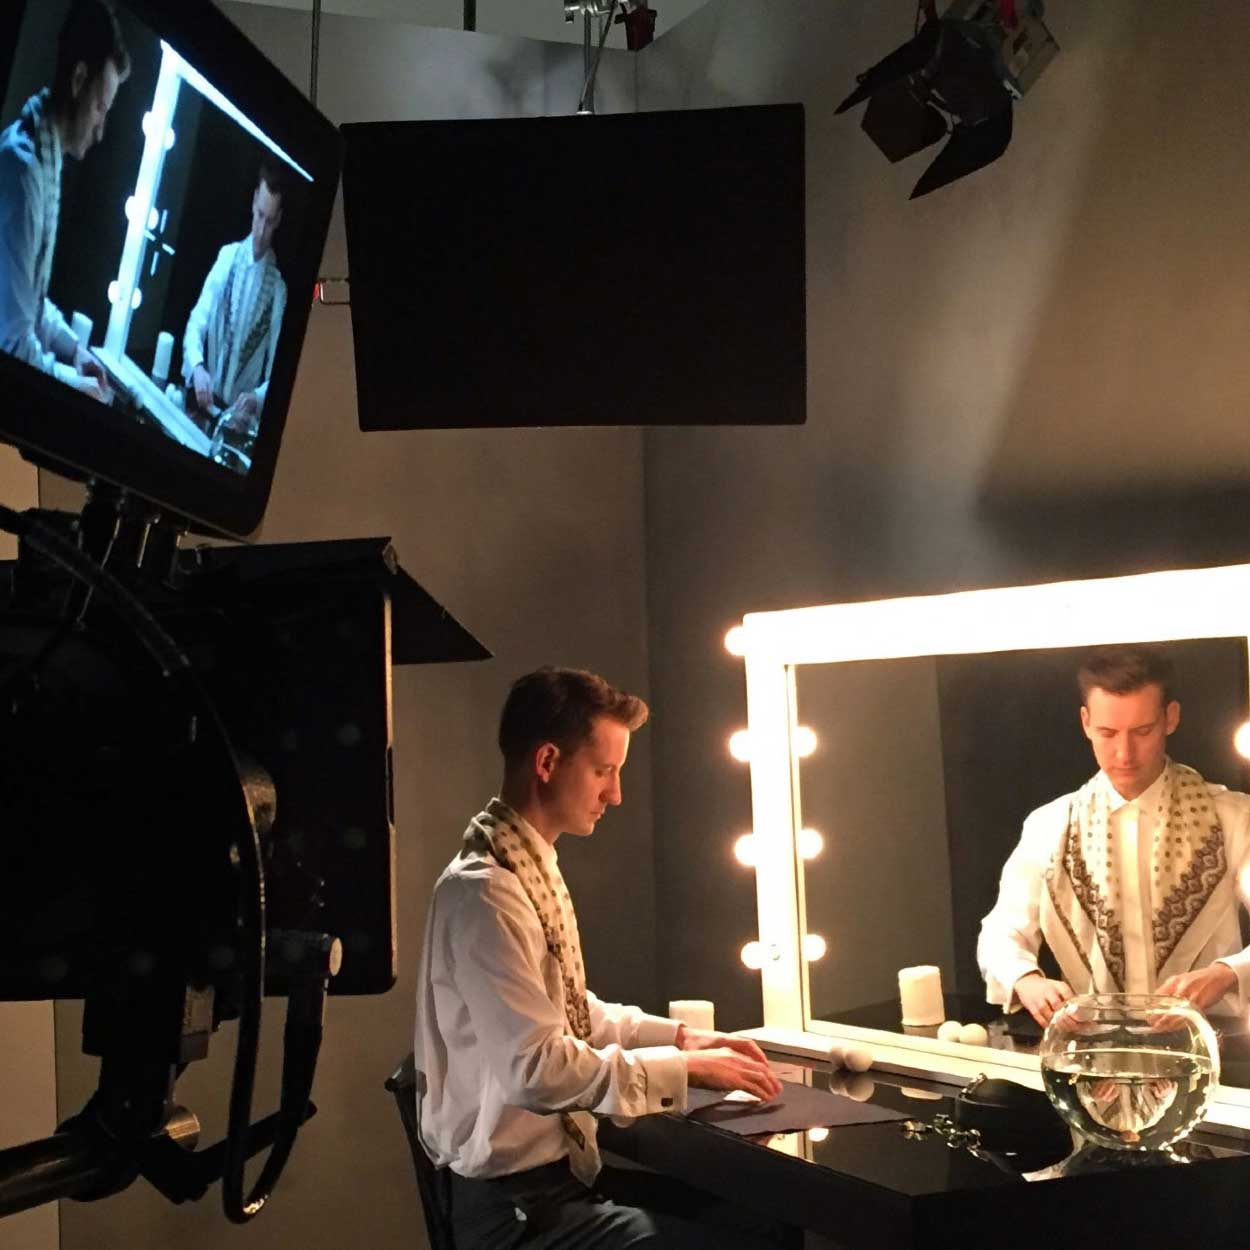 Thumbnail of magician Christopher Howell practicing in front of a dressing room mirror on set for the Canali commercial.